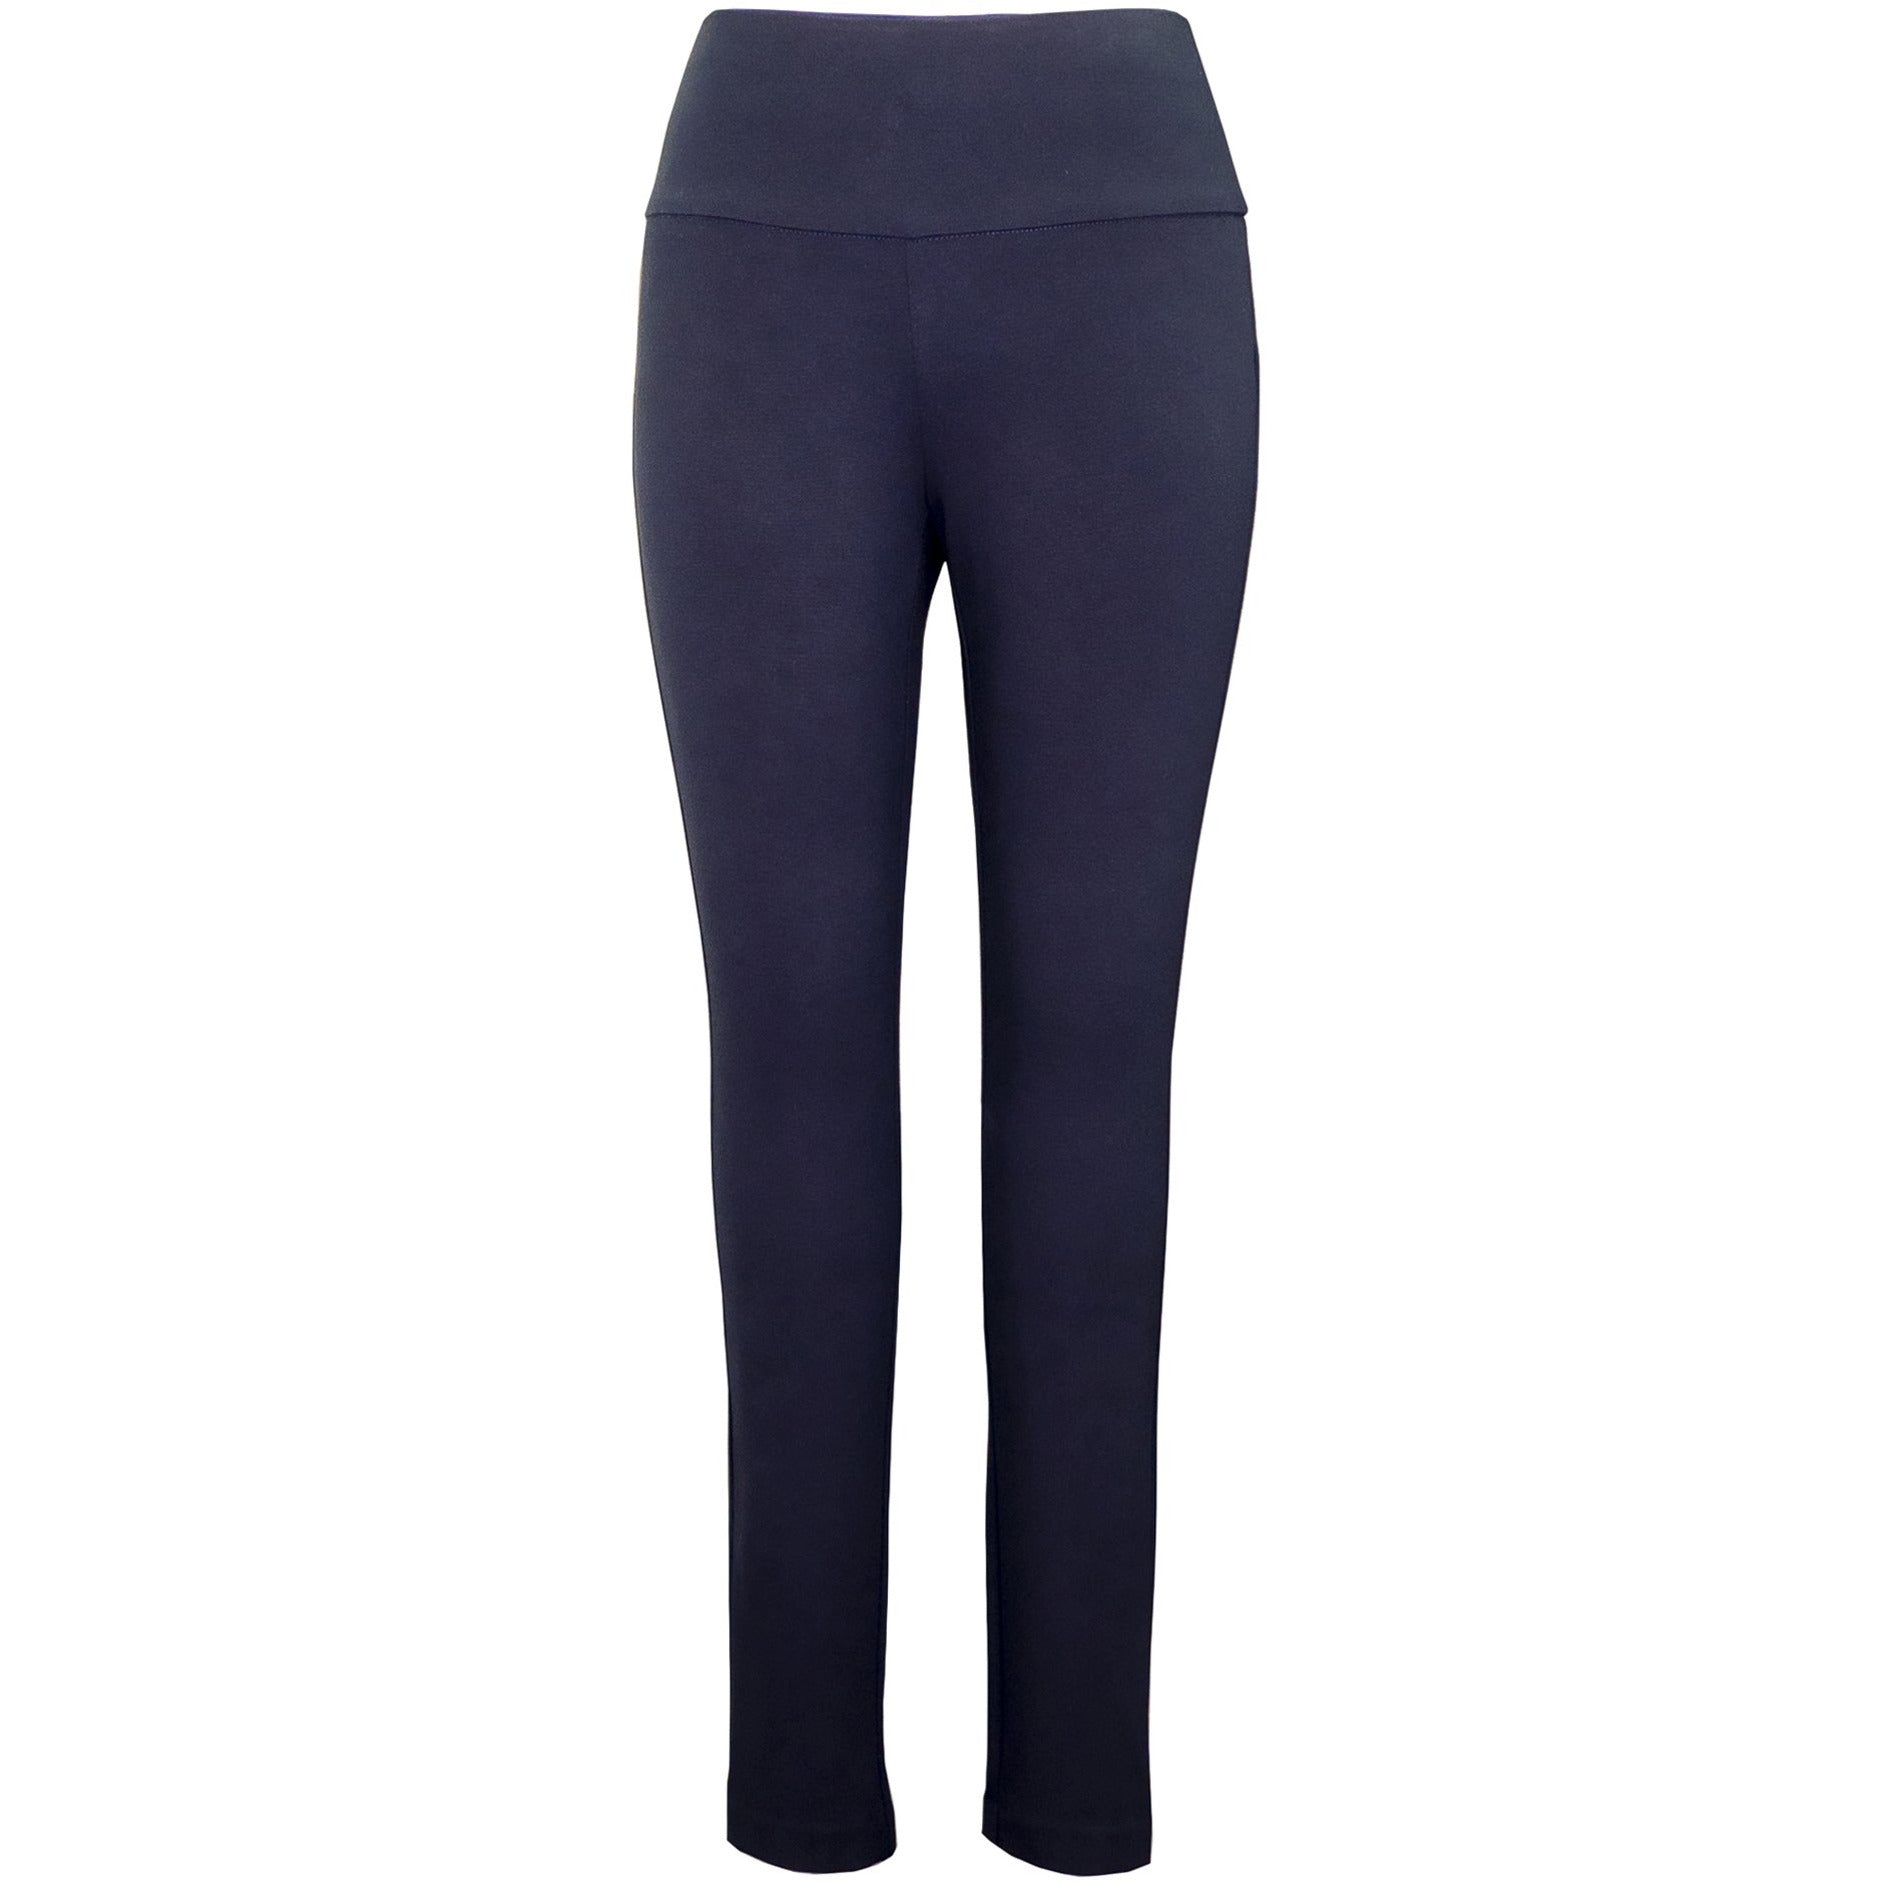 Up! Pant Ponte Illusion Pant in Navy